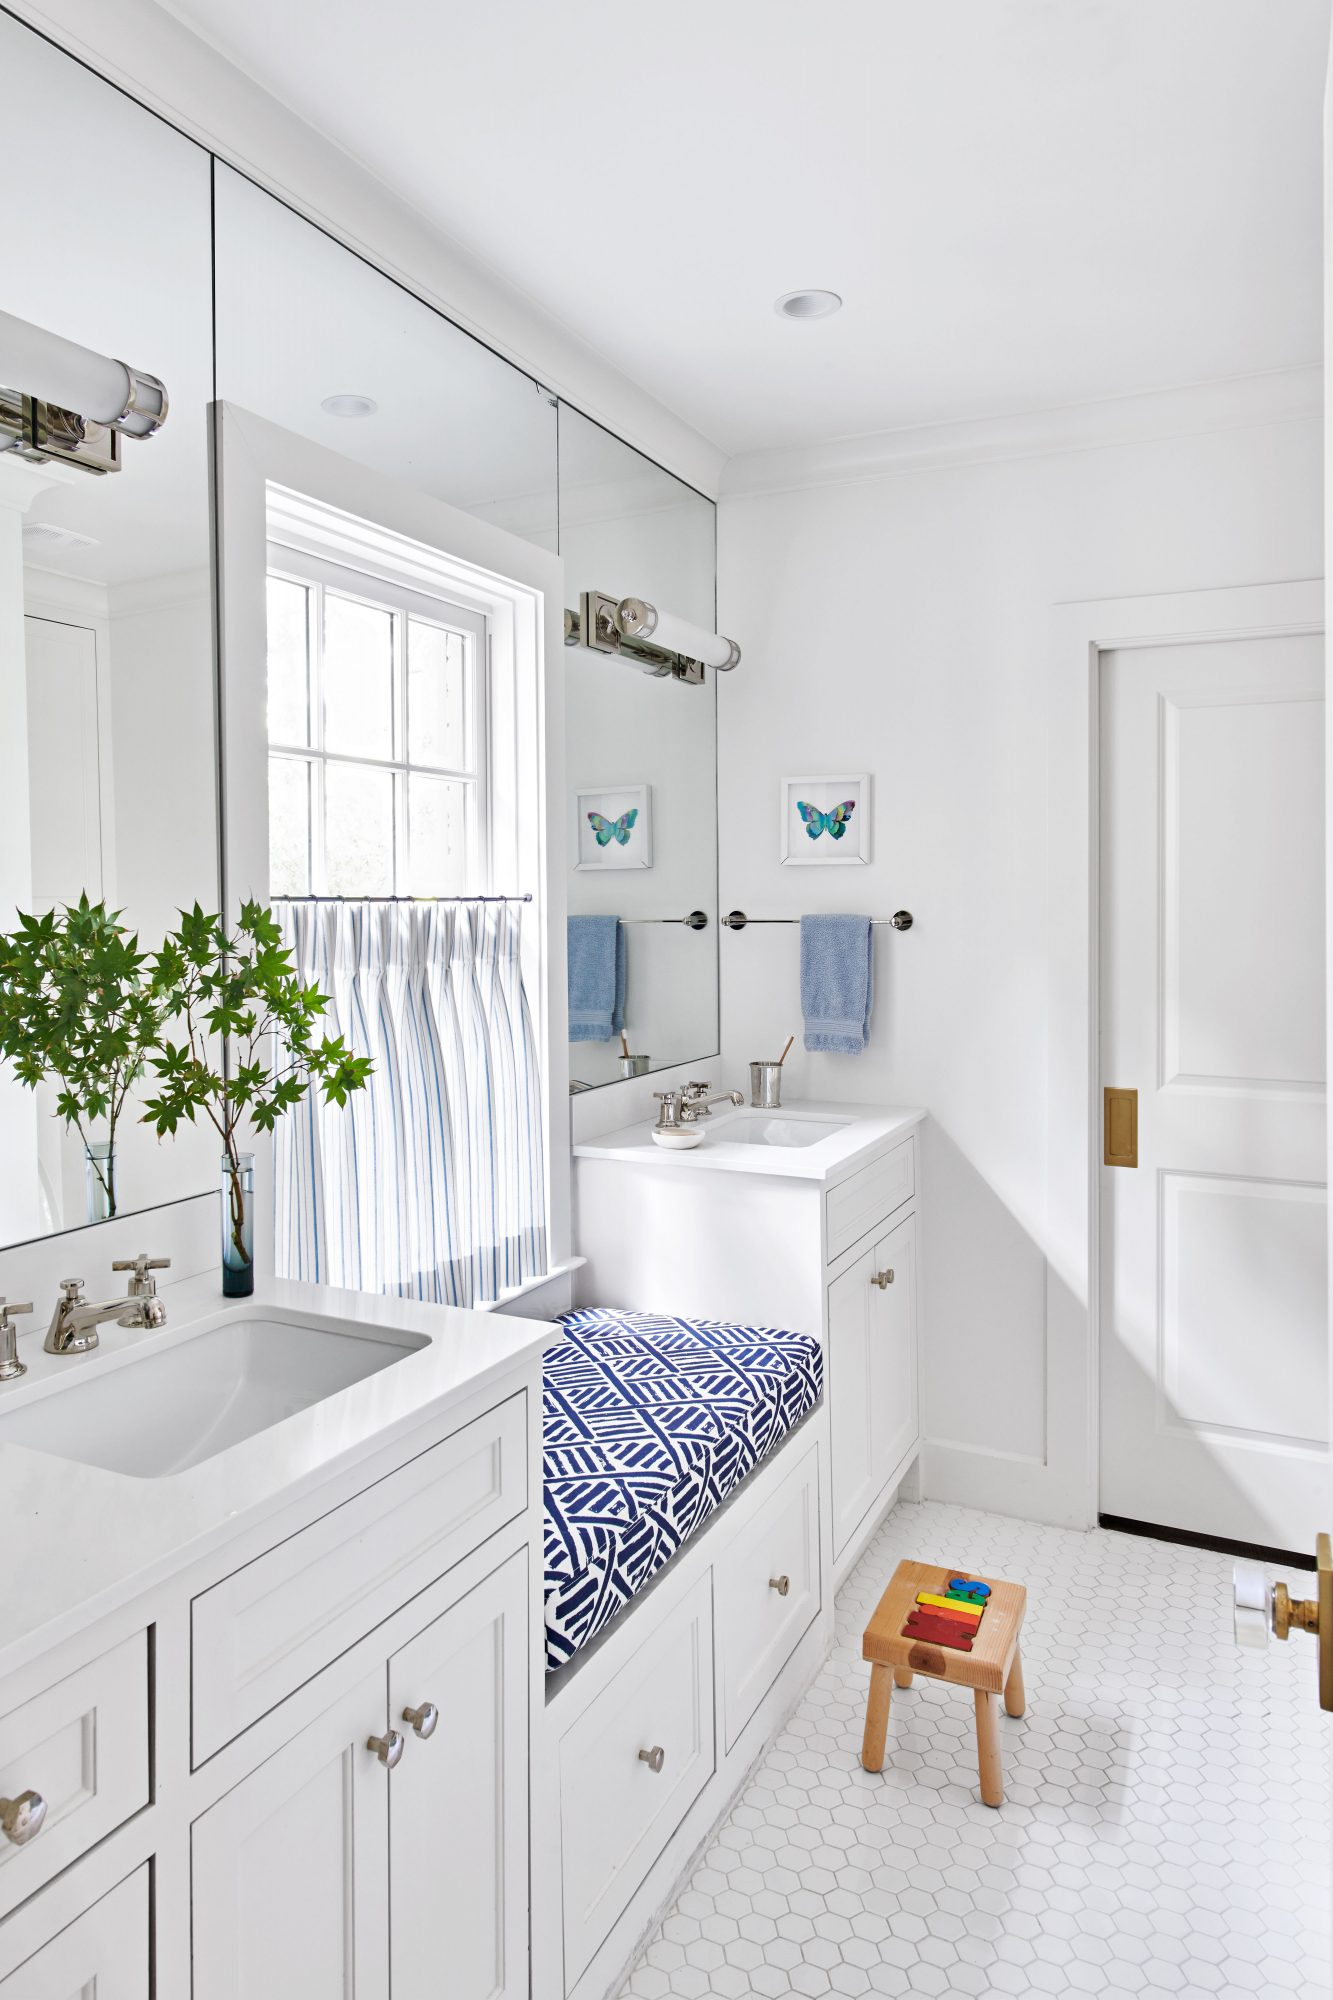 White bathroom with blue window seat between sinks